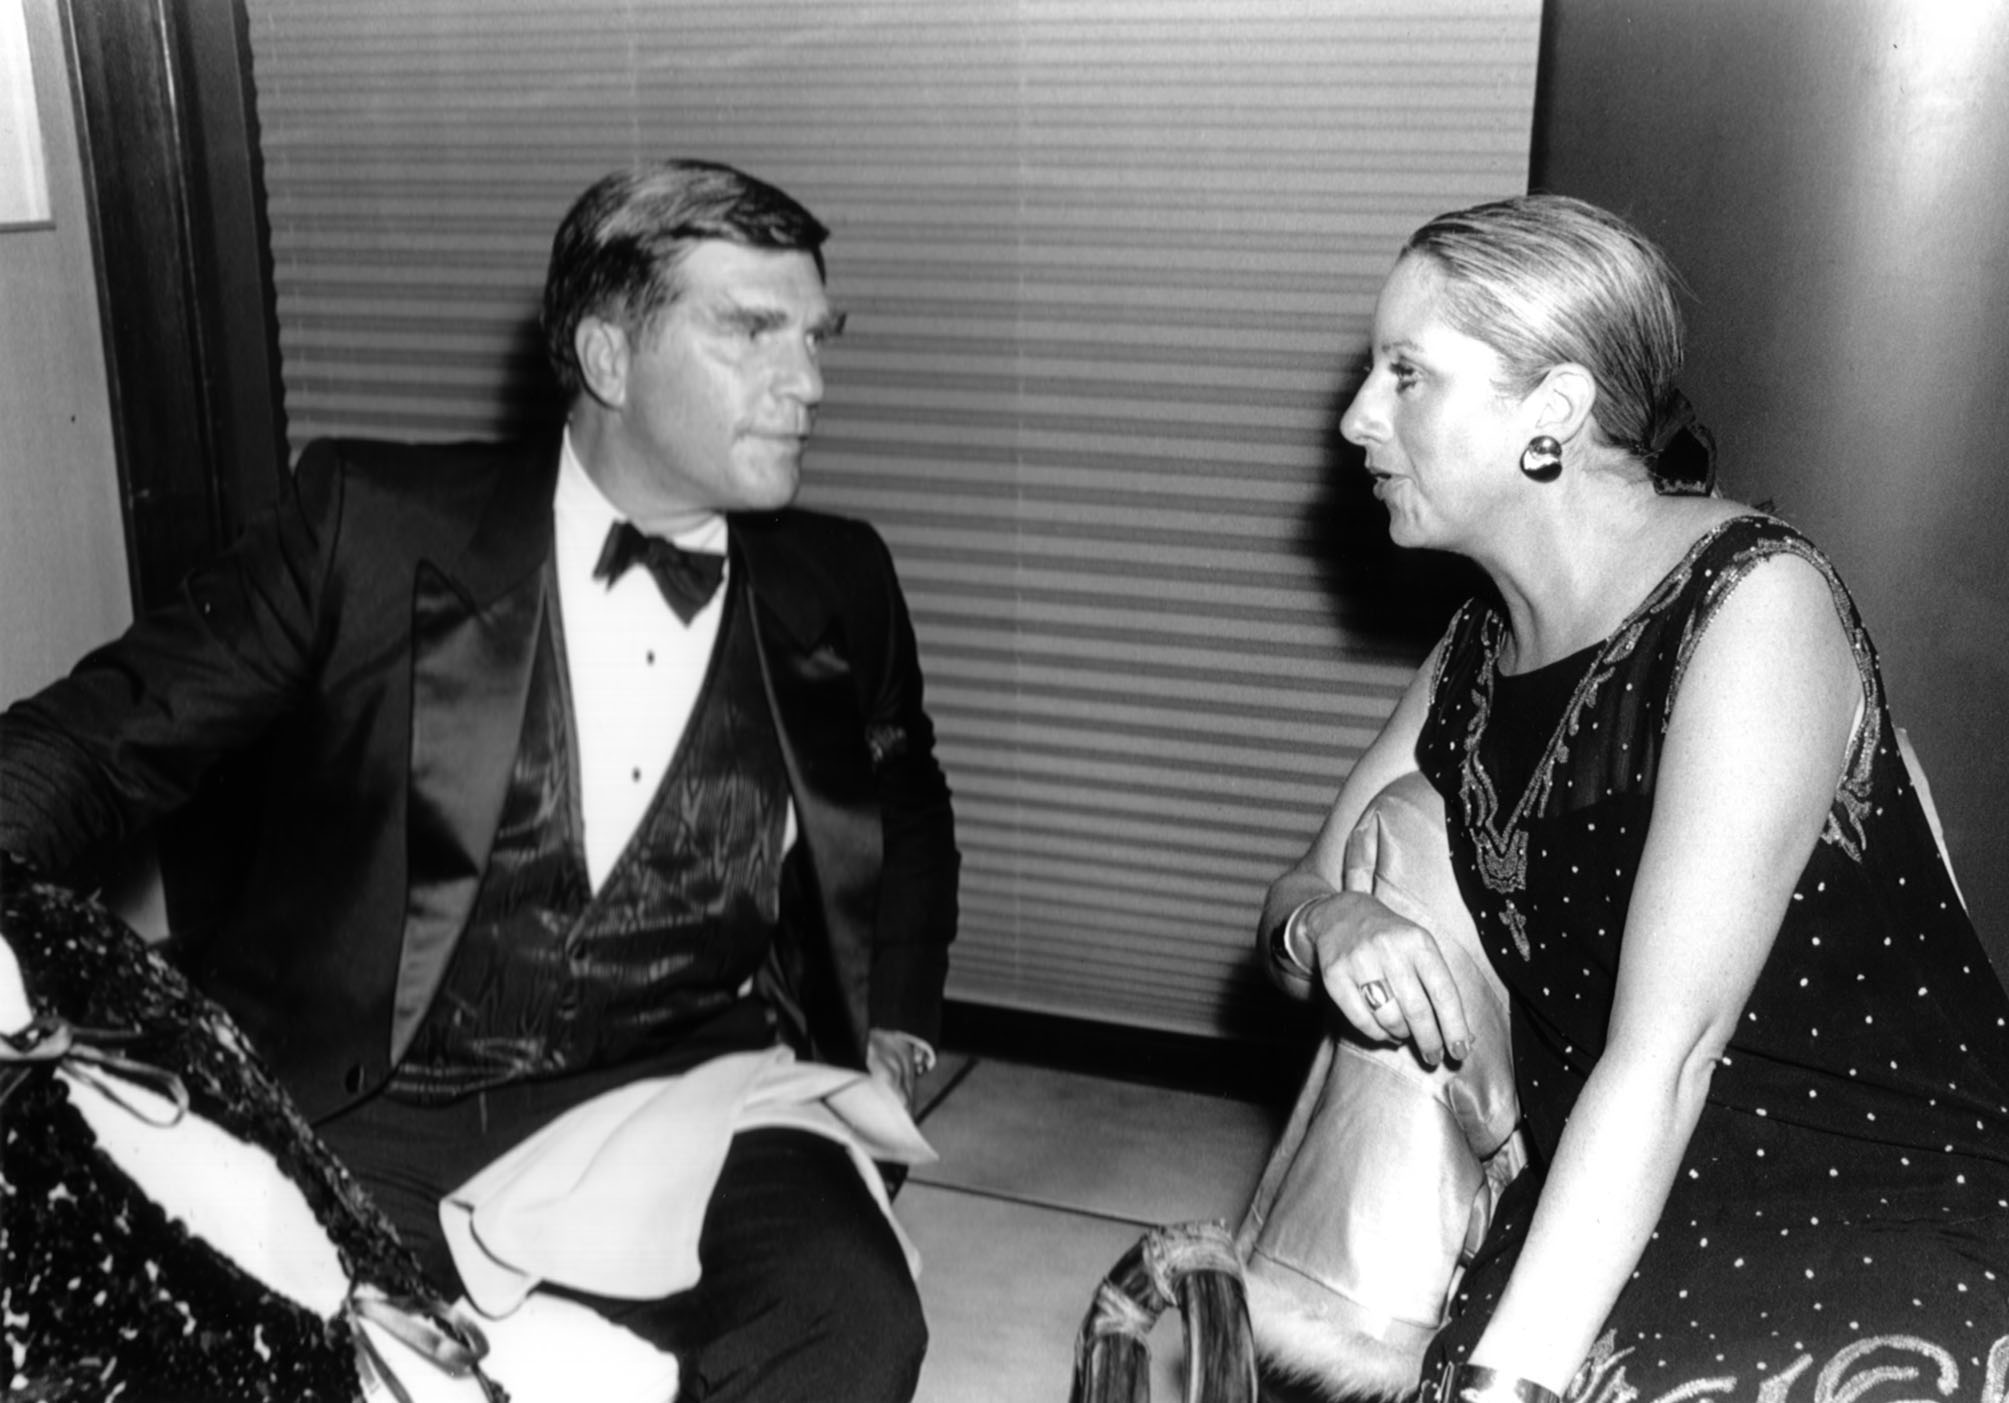 Board of Directors Chairman George Gund and Margot deWildt at the 28th San Francisco International Film Festival, 1985.  Photo by Bruce Forrester.